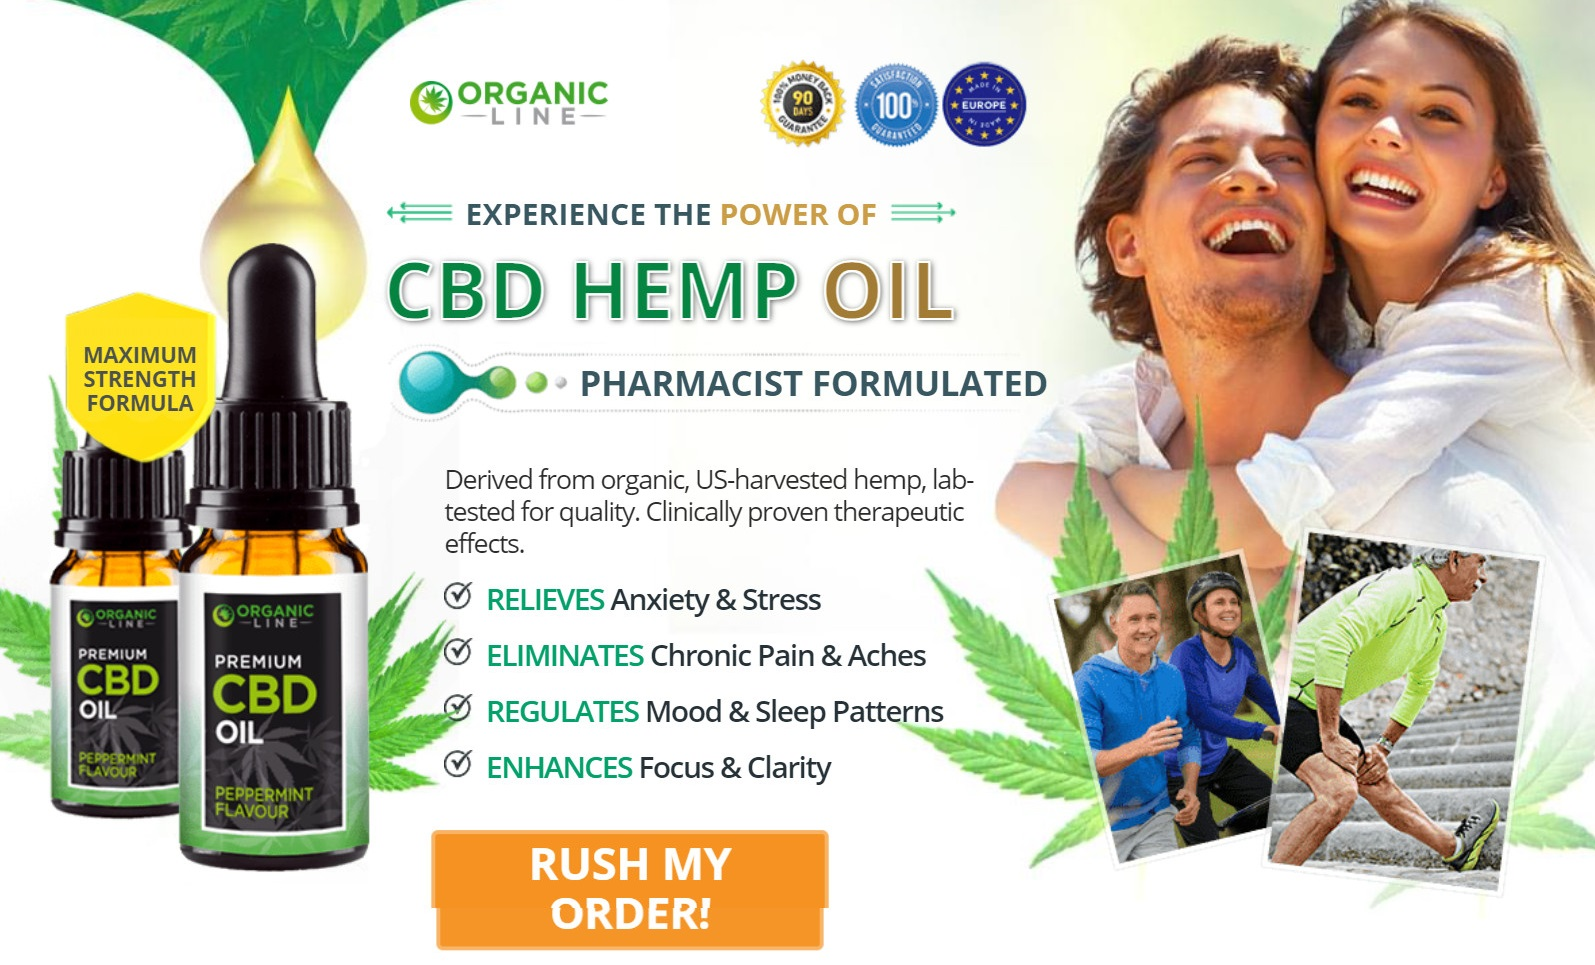 Organic Line CBD Oil Buy Now